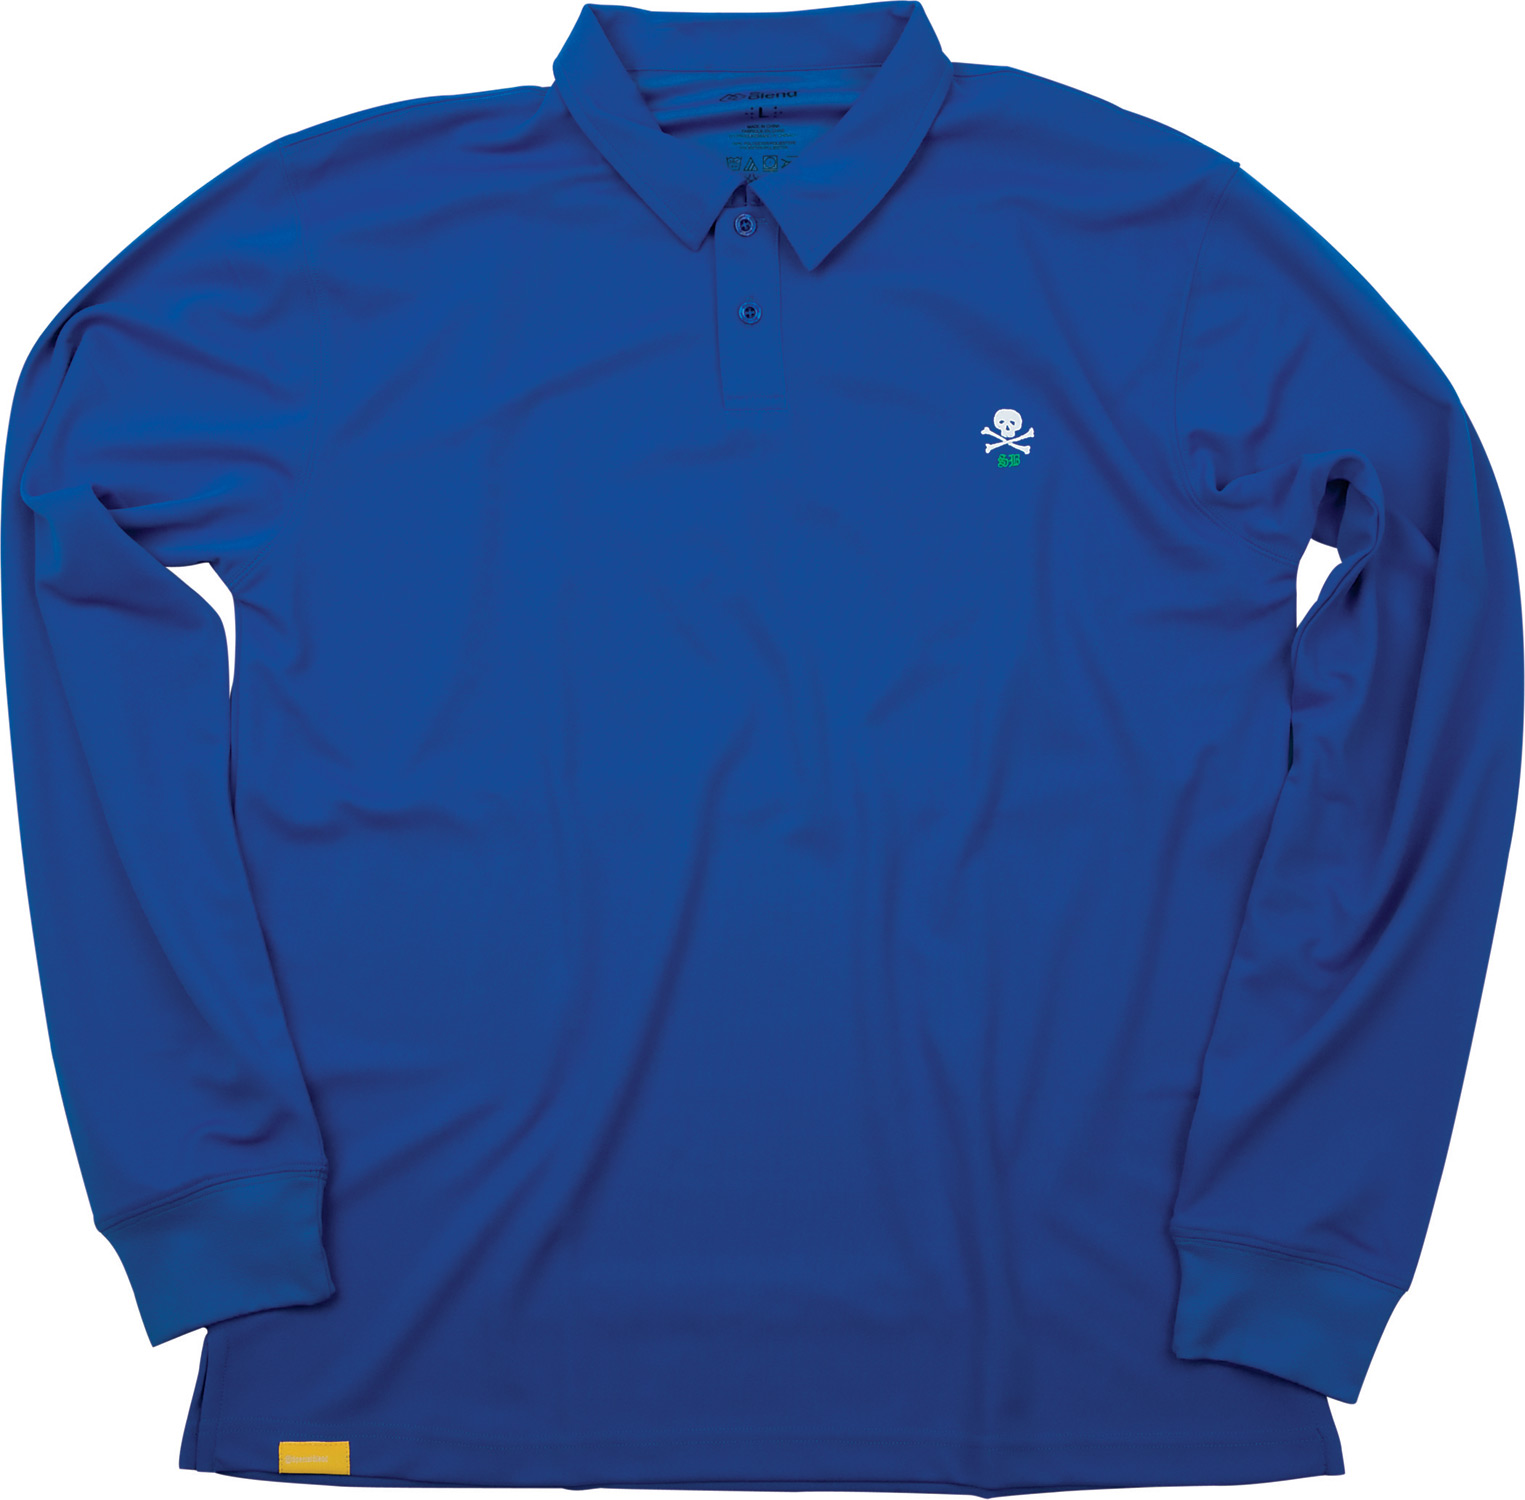 If you're in the market for a great golfing shirt, then you can't go wrong with the Special Blend Polo Insulator Base layer Top. This shirt is stylish and has the logo embroidered on the upper left chest. It also has moisture wicking properties and has anti-bacterial added on the fabric to prevent odor. So, a shirt that looks great, keeps you dry, and keeps you smelling good. What more could you want when you're hitting the links Key Features of the Special Blend Polo Insulator Baselayer Top: 100% polyester Wicking properties Cover stitched seams Anti-bacterial added on fabric to prevent odor Logo embroidery on chest Woven label on hem - $9.95